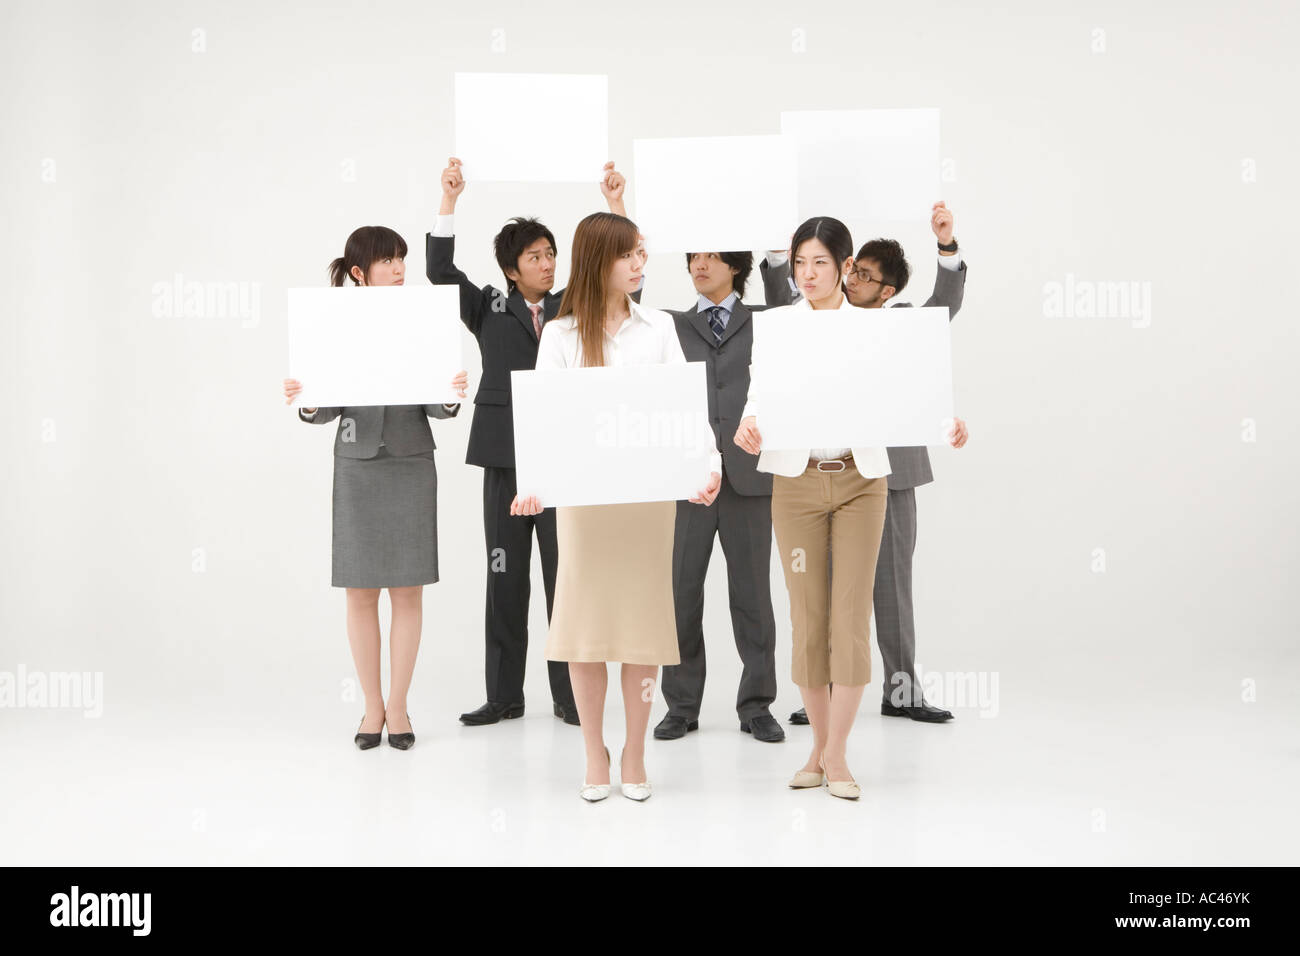 Business people holding blank placards - Stock Image